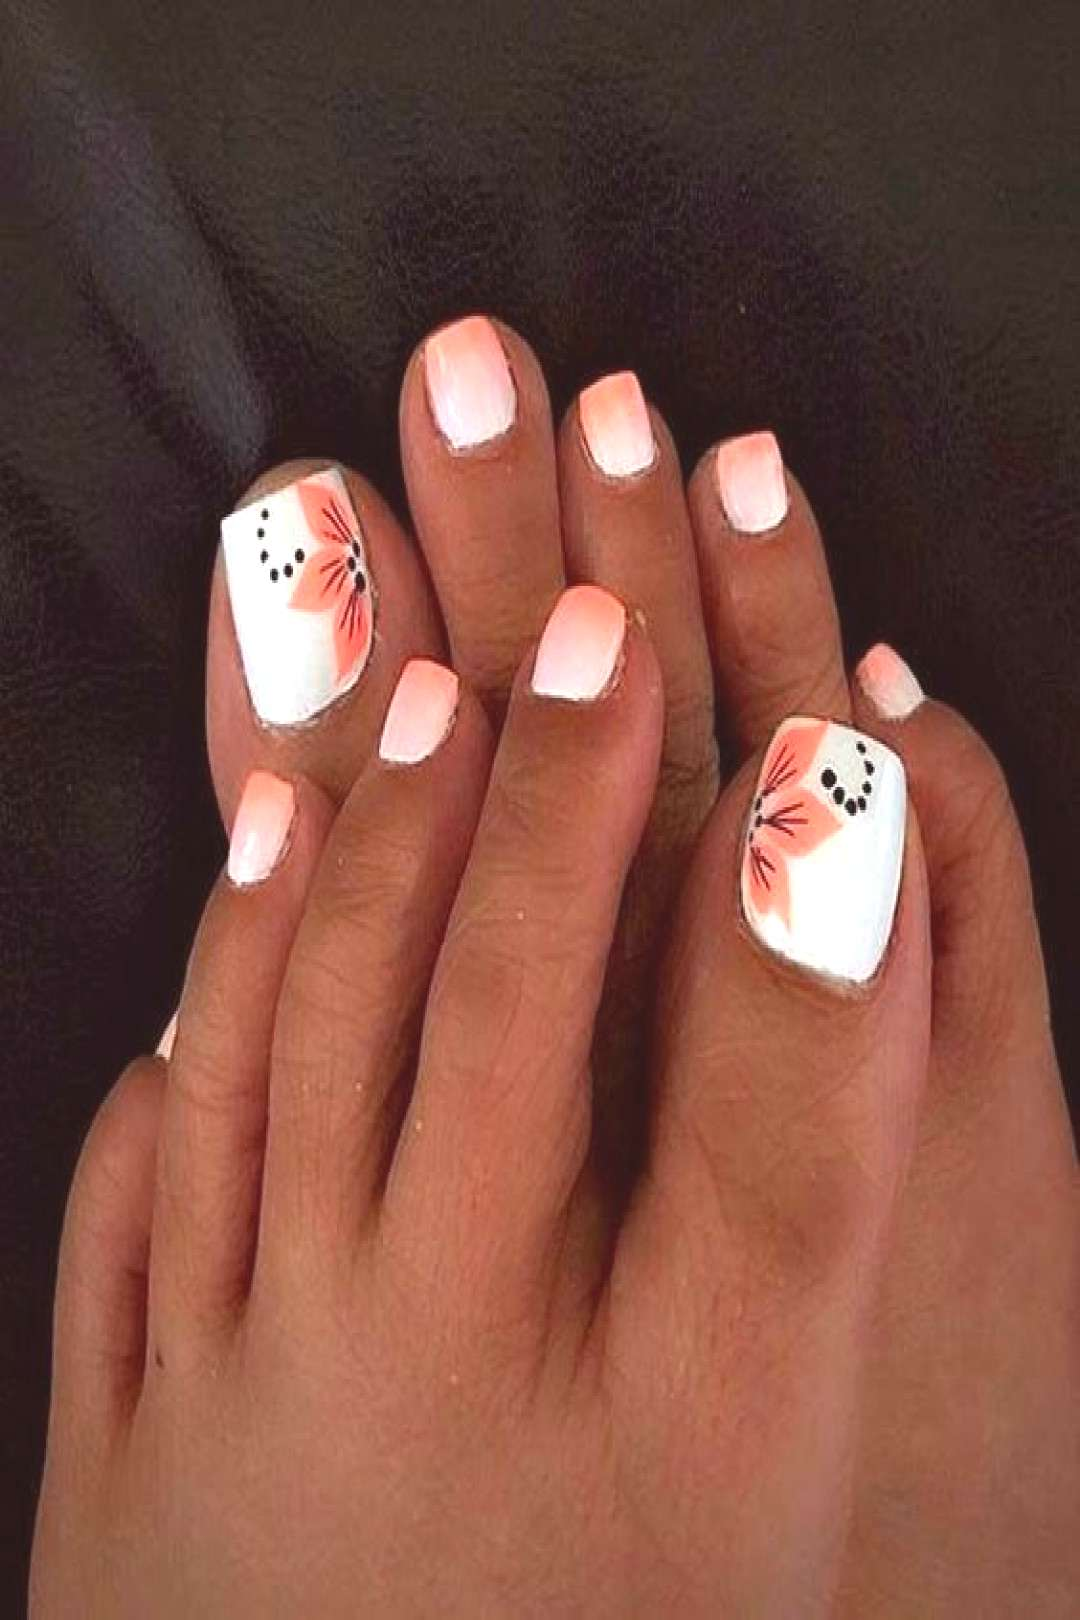 60+ Summer Nail Art 2019 Ideas to give you that invincible shine and confidence - Hike n Dip